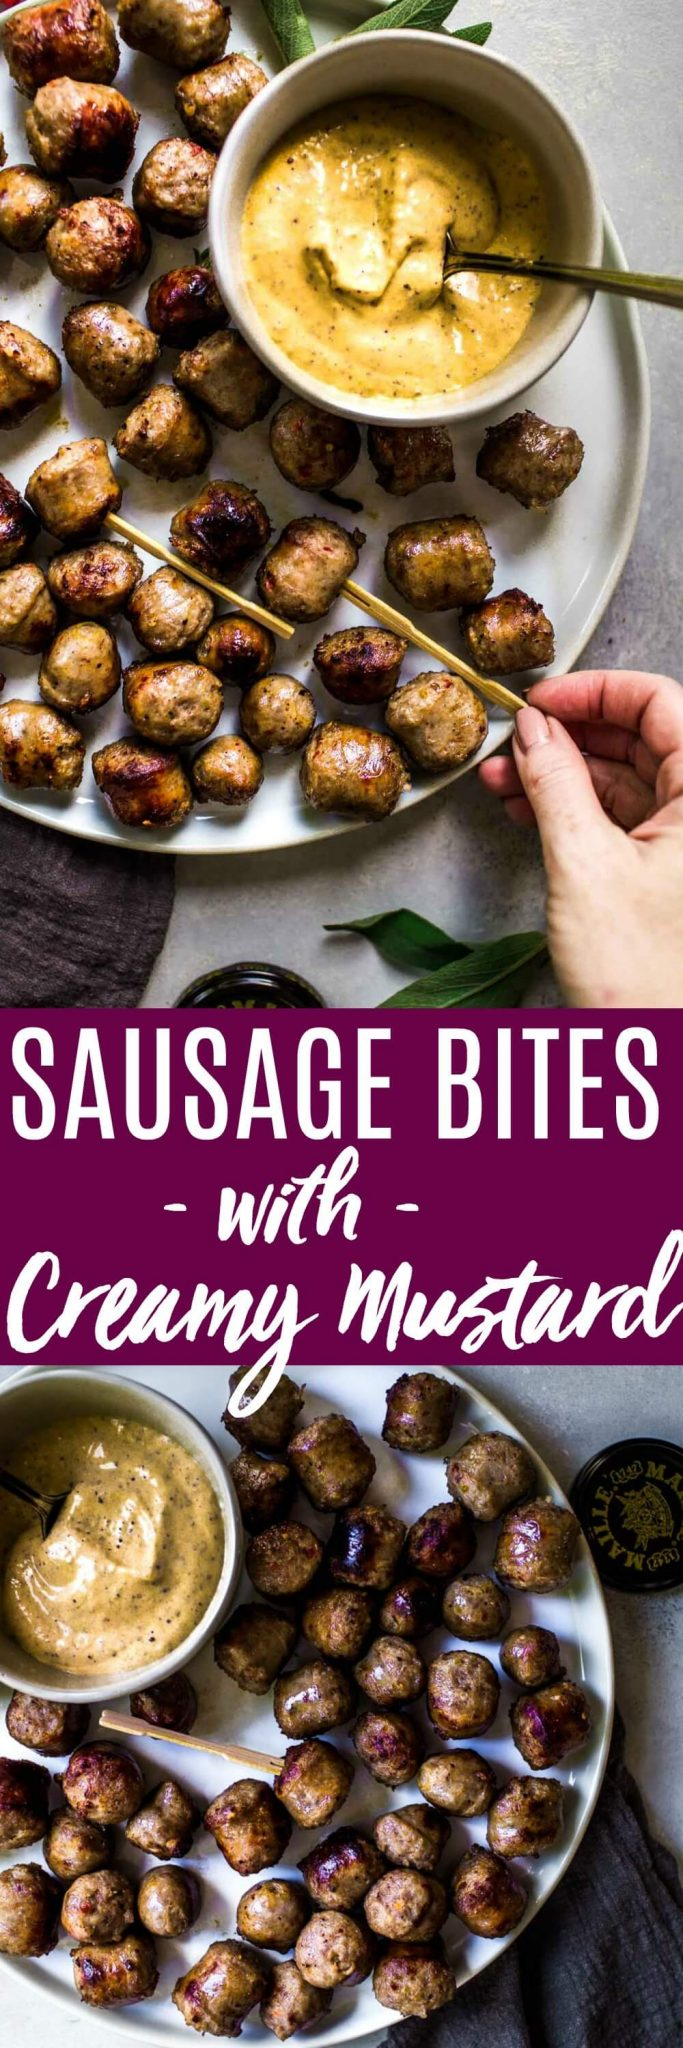 These Sausage Bites are simmered in white wine and served with a creamy, spicy mustard dipping sauce. They're a delicious appetizer that take minimal prep work and cook up quickly. #appetizer #partyappetizer #fingerfood #sausagebites